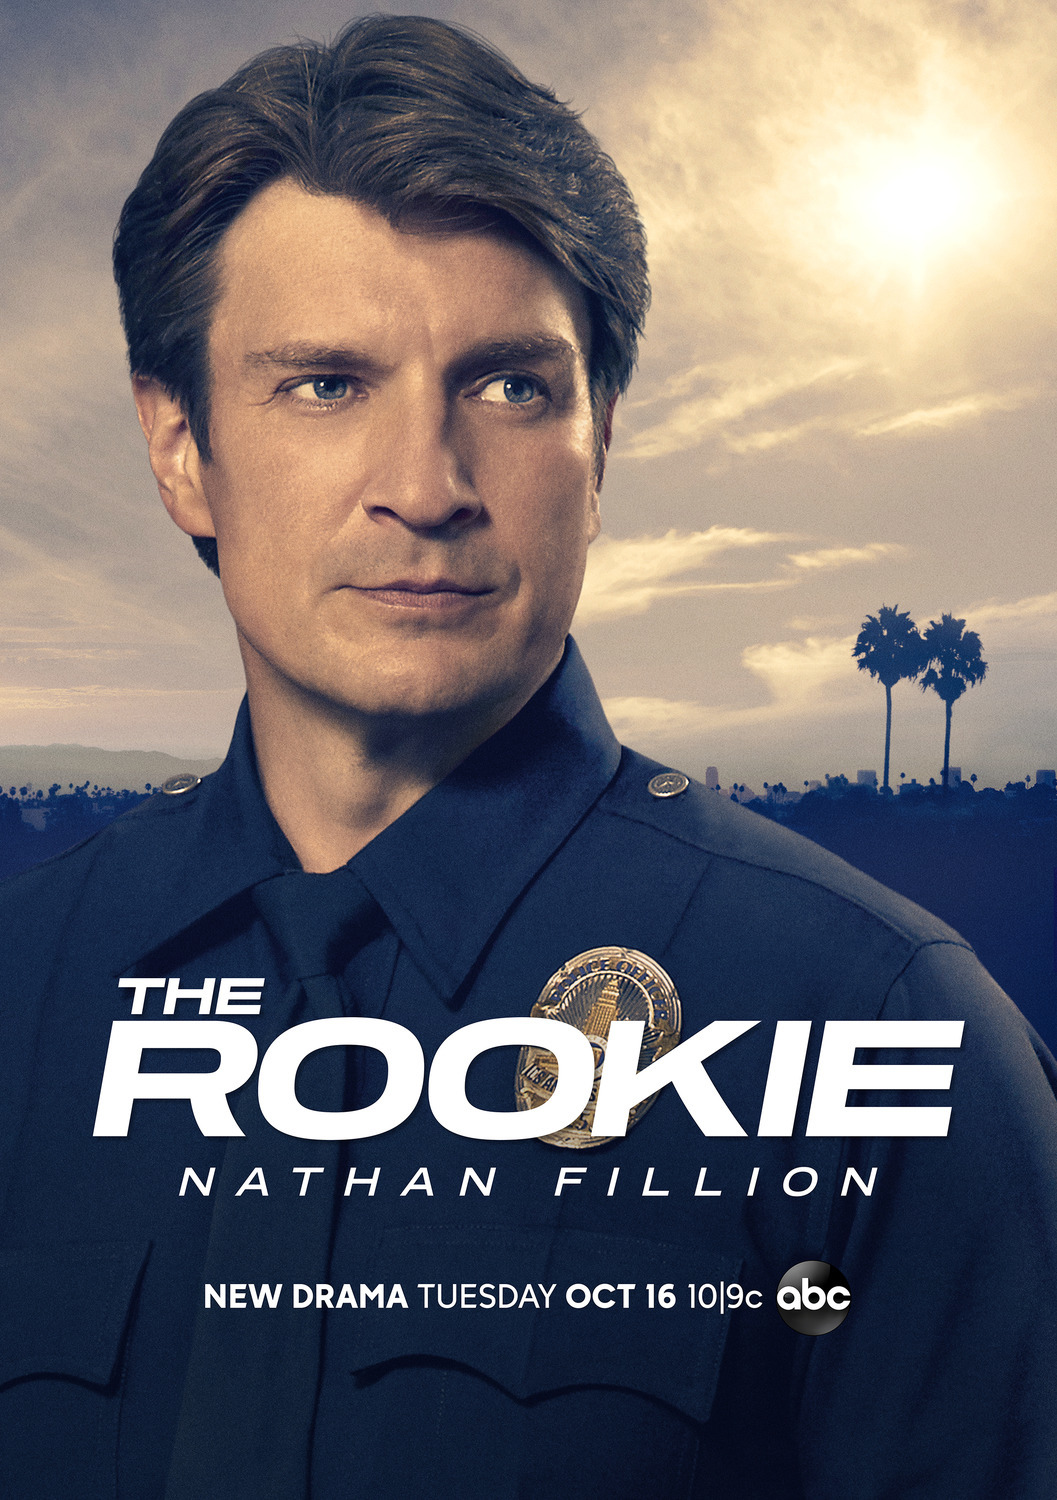 Naujokas (1 Sezonas) / THE ROOKIE Season 1